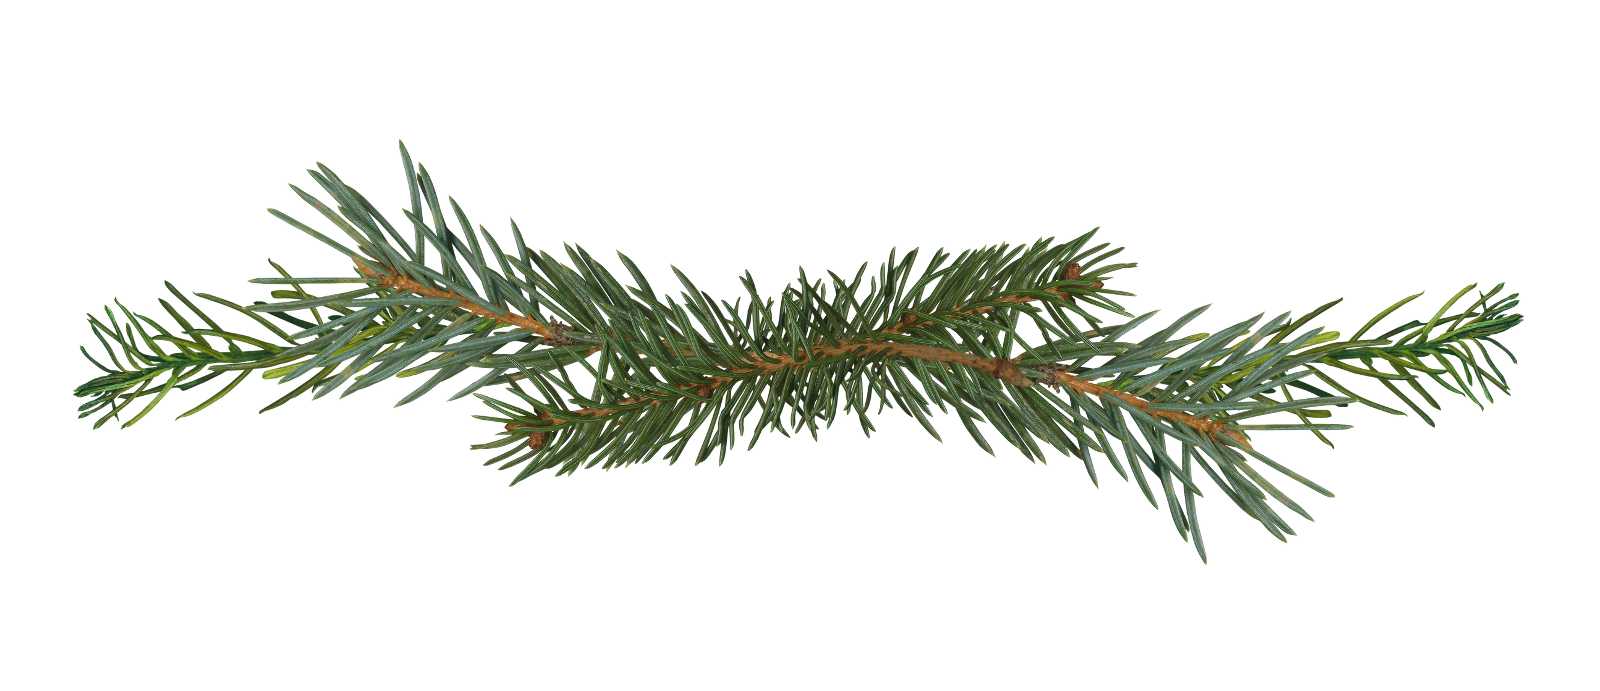 Illustrative image of spruce branch